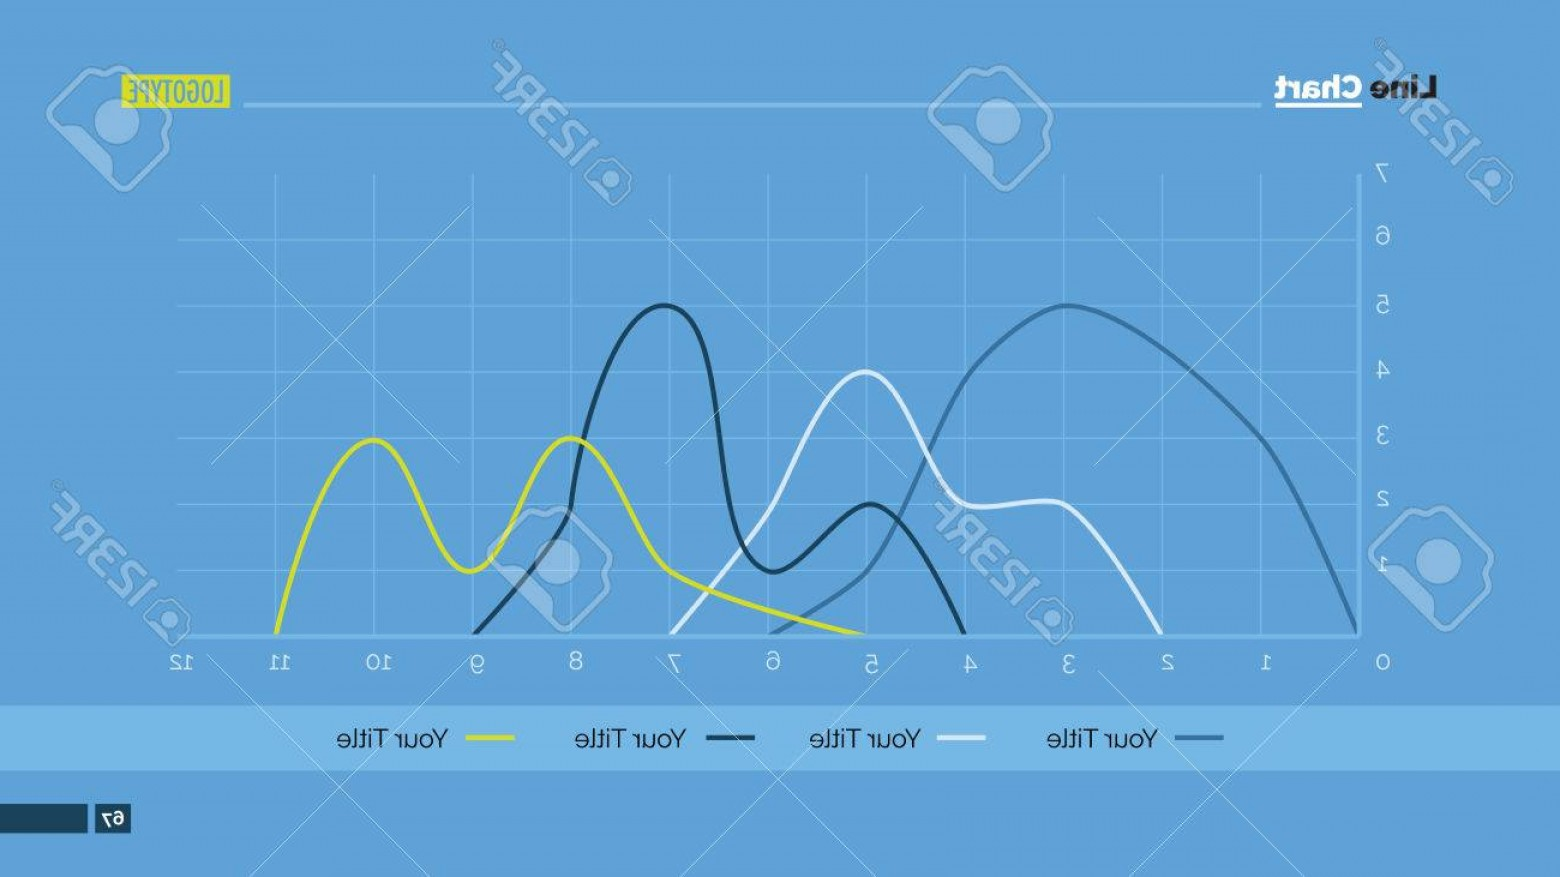 3 Vectors PowerPoint: Photostock Vector Editable Template Of Powerpoint Presentation Slide Representing Line Chart With Four Curves